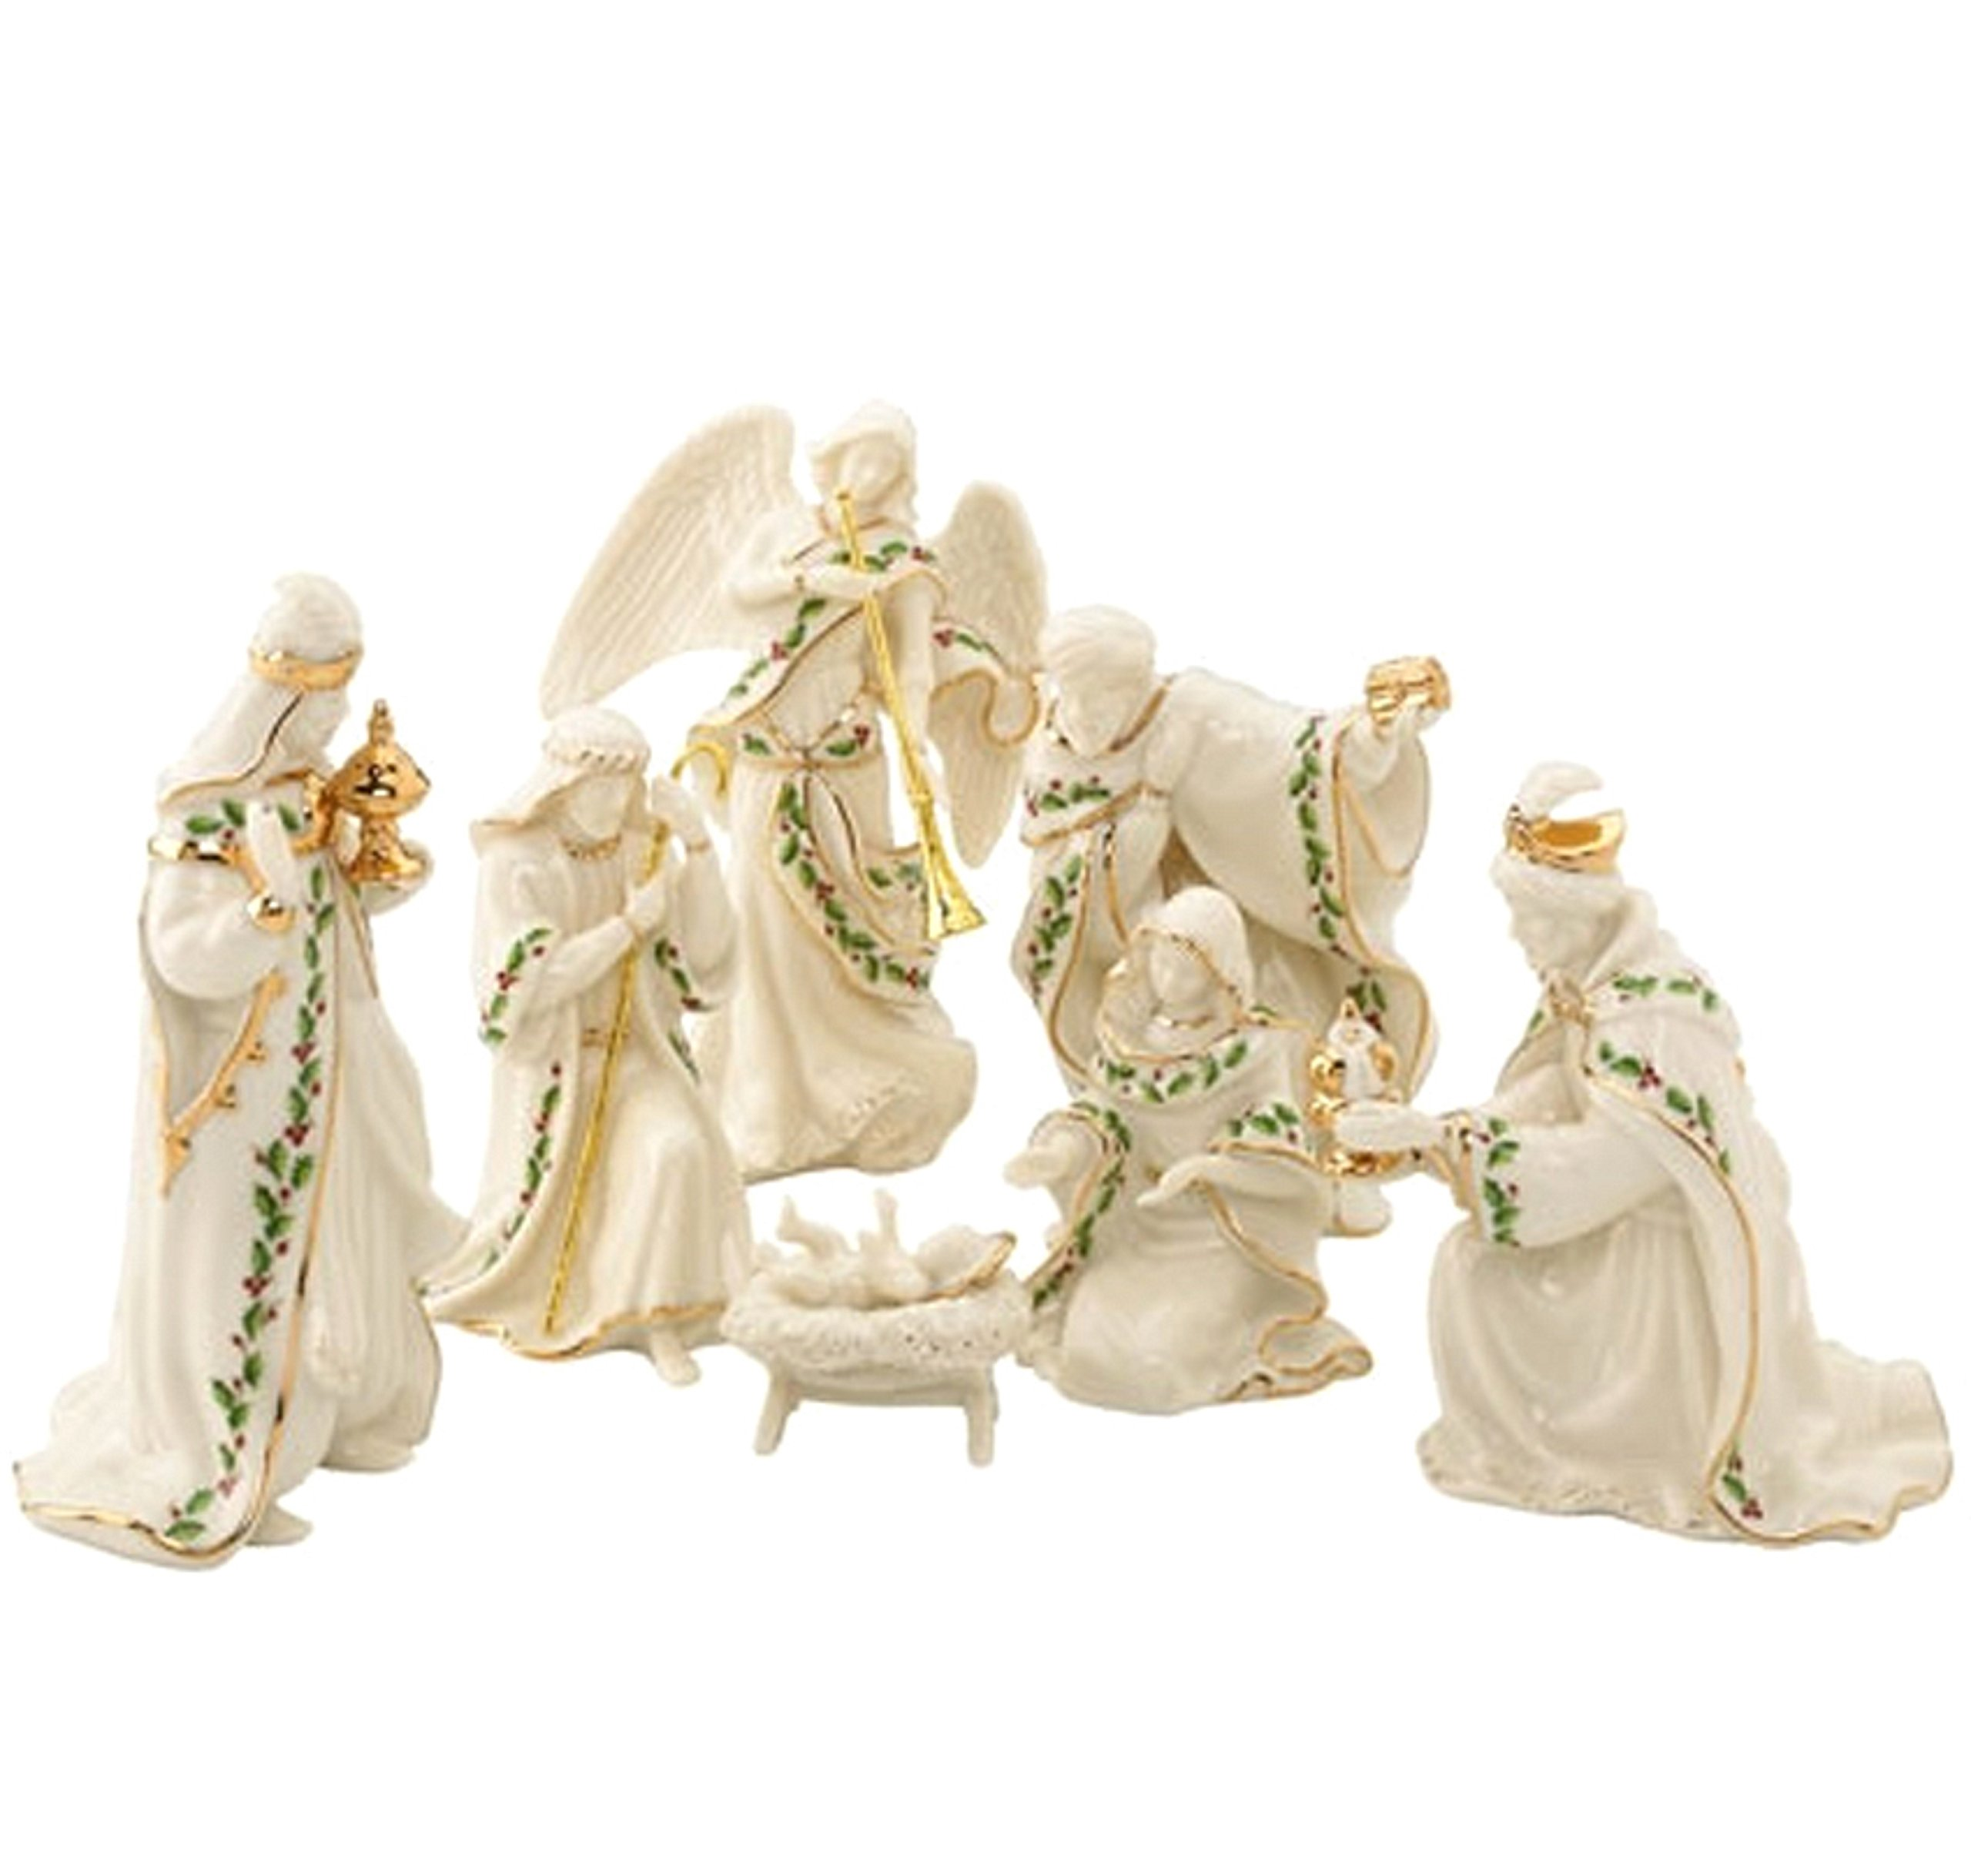 Lenox Holiday Miniature Nativity 7 Piece Figurine Set Holy Family 3 Kings Angel with Trumpet